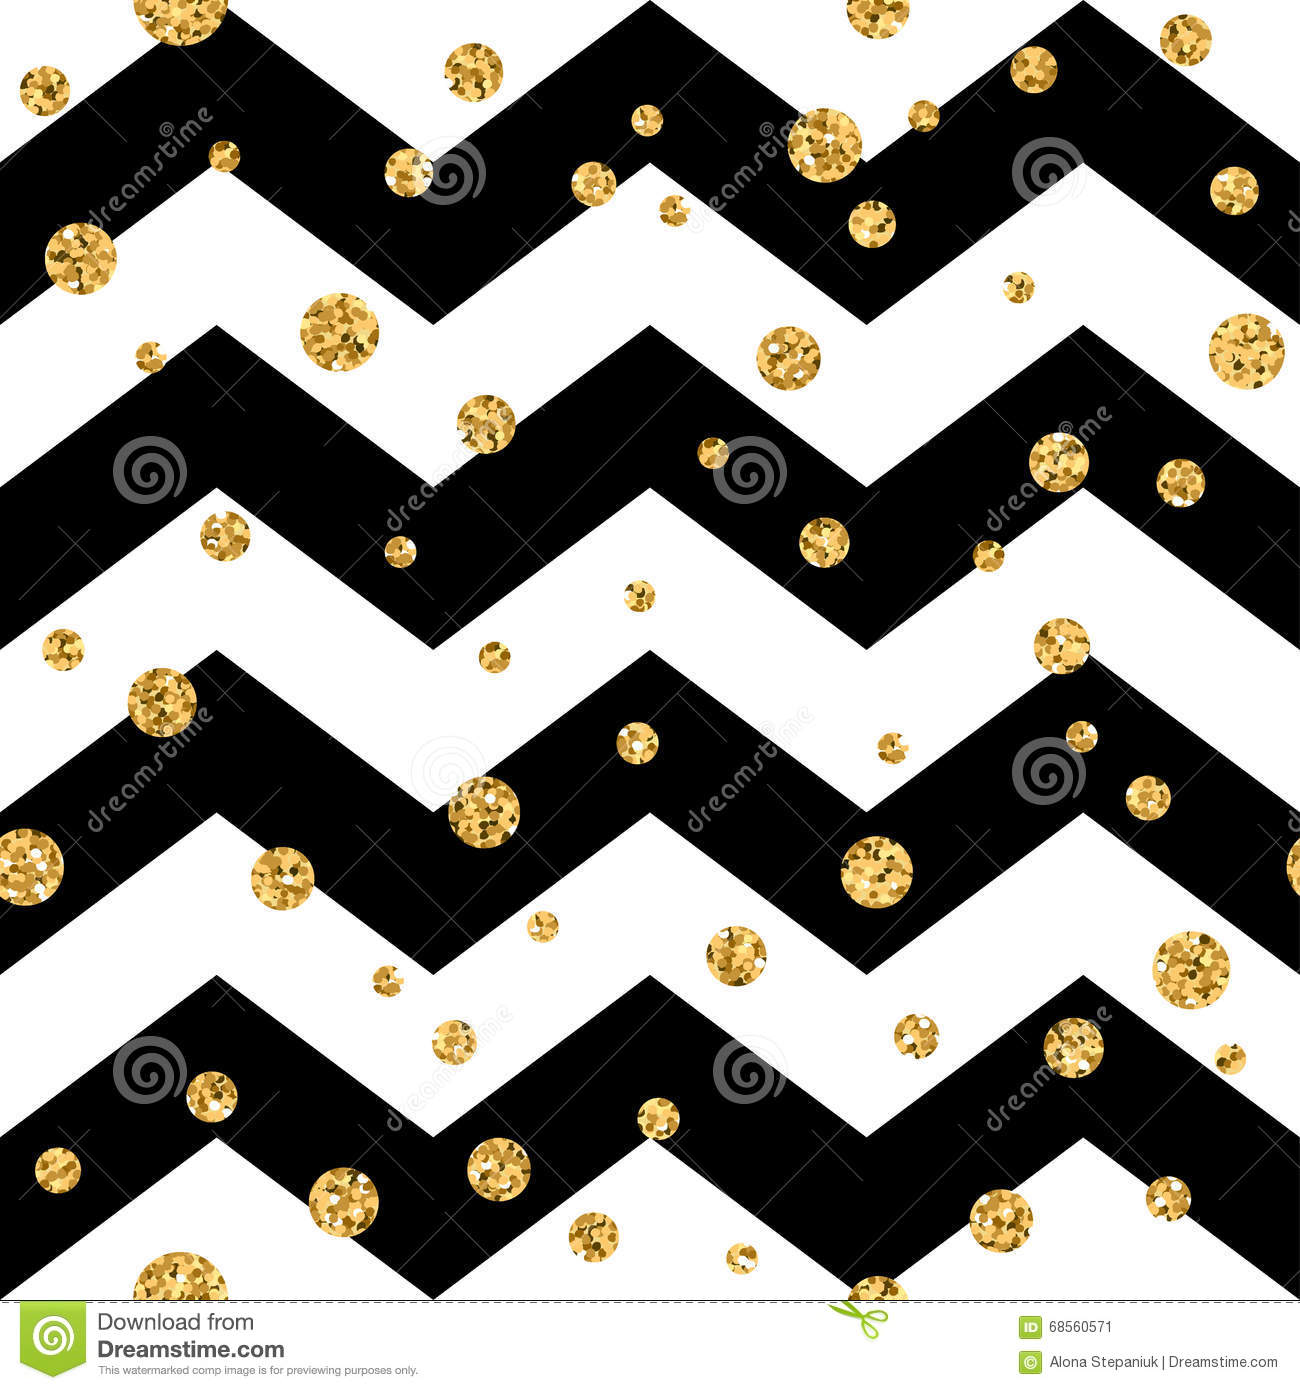 golden polka dot seamless pattern gold confetti glitter zigzag black 1 stock vector. Black Bedroom Furniture Sets. Home Design Ideas